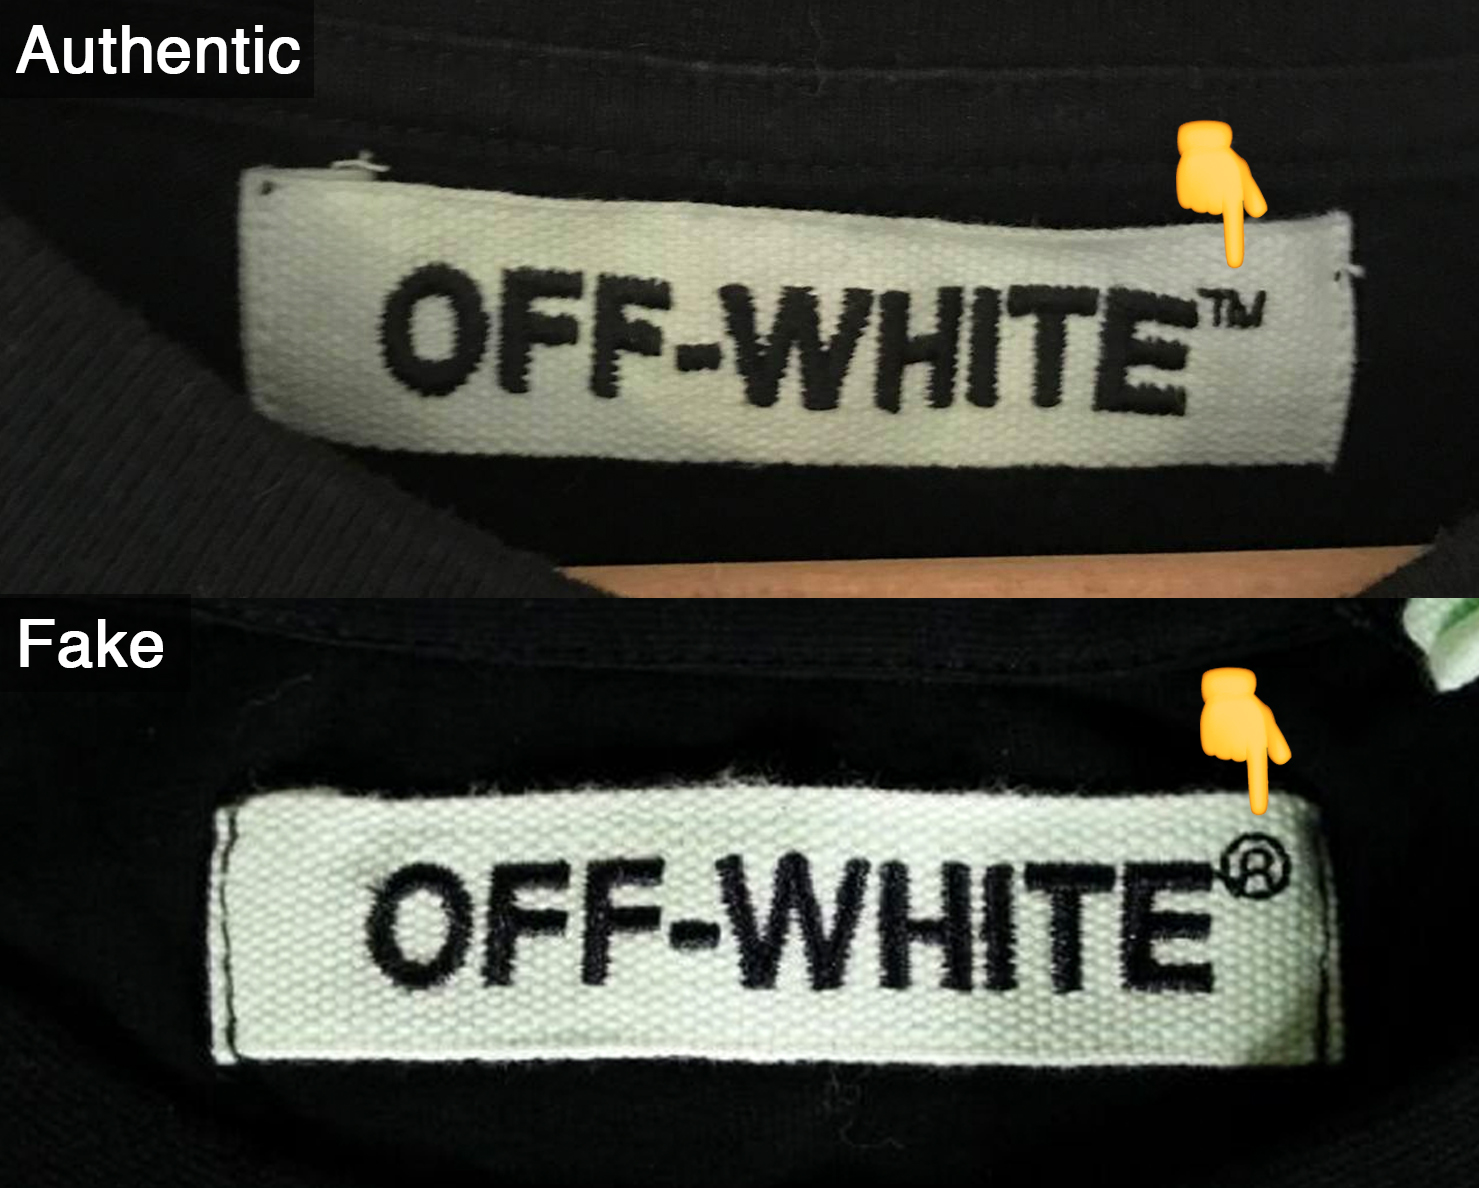 The flaw here is that Off-White is always accompanied by ™ and never  Registered Trademark (®) 058485cf06fde